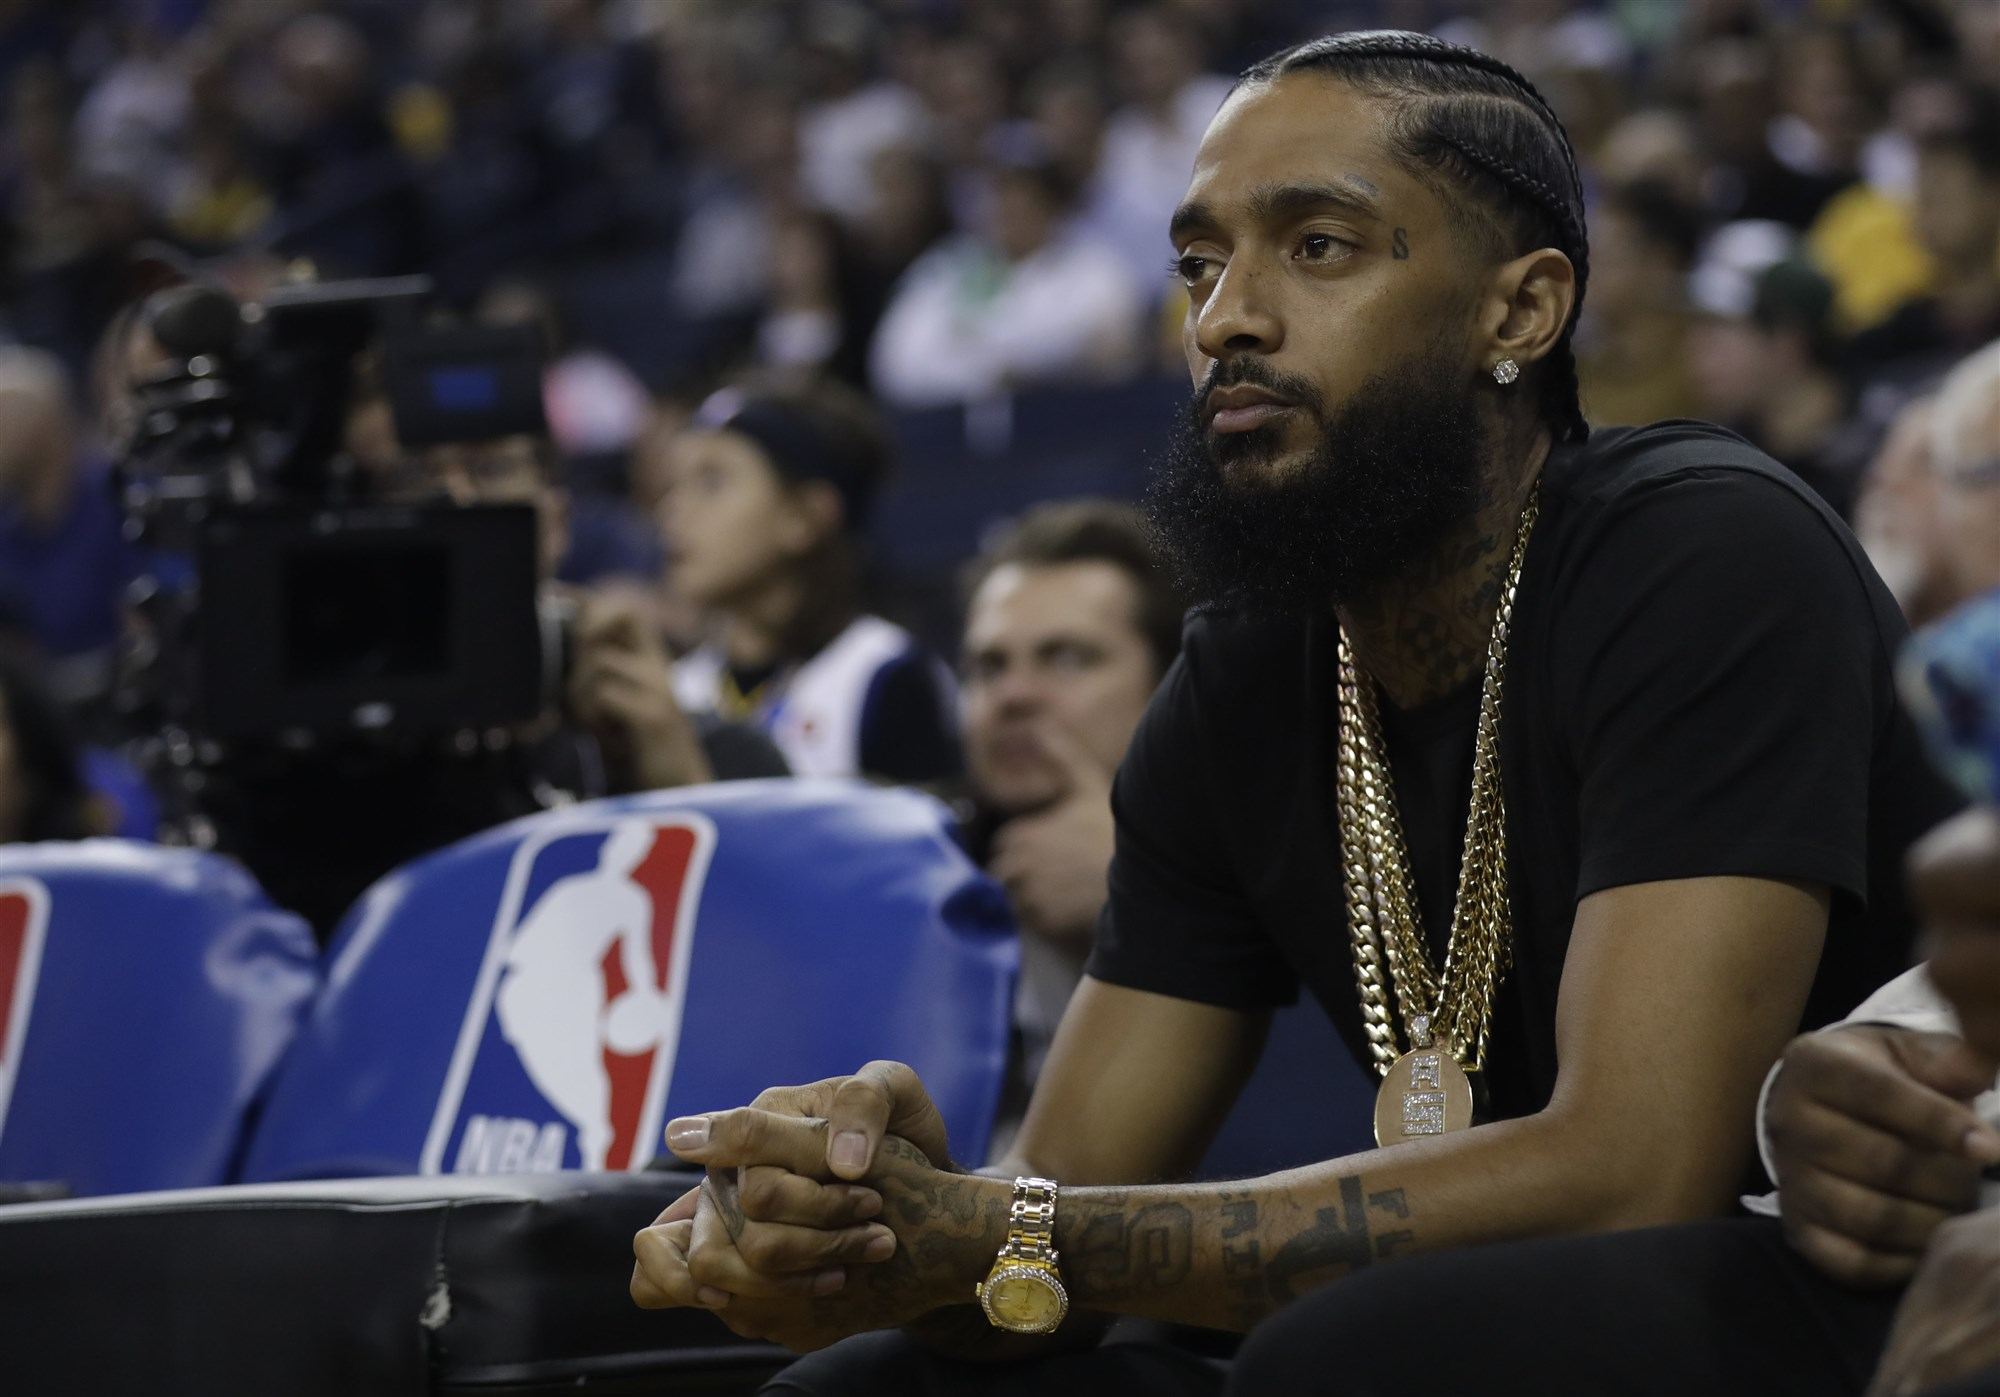 The rapper Nipsey Hussle at courtside for a game between the Golden State Warriors and the Milwaukee Bucks on in Oakland, California, in March 2018. Photo: Marcio Jose Sanchez/AP.